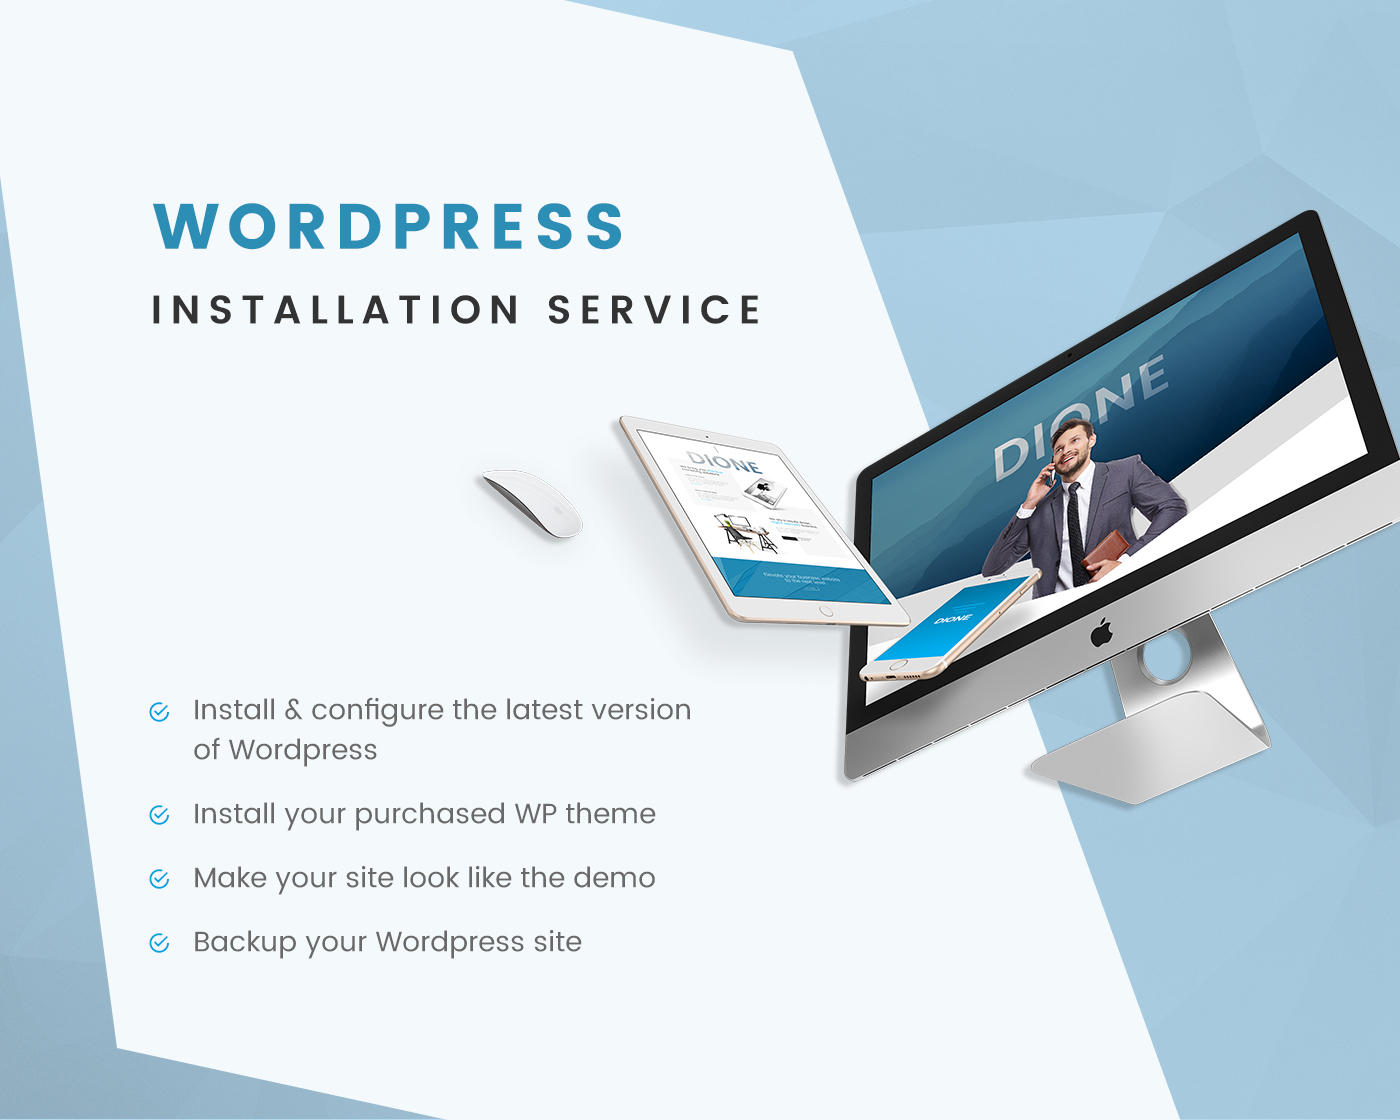 Express WordPress Installation  by ThemeMove - 102937